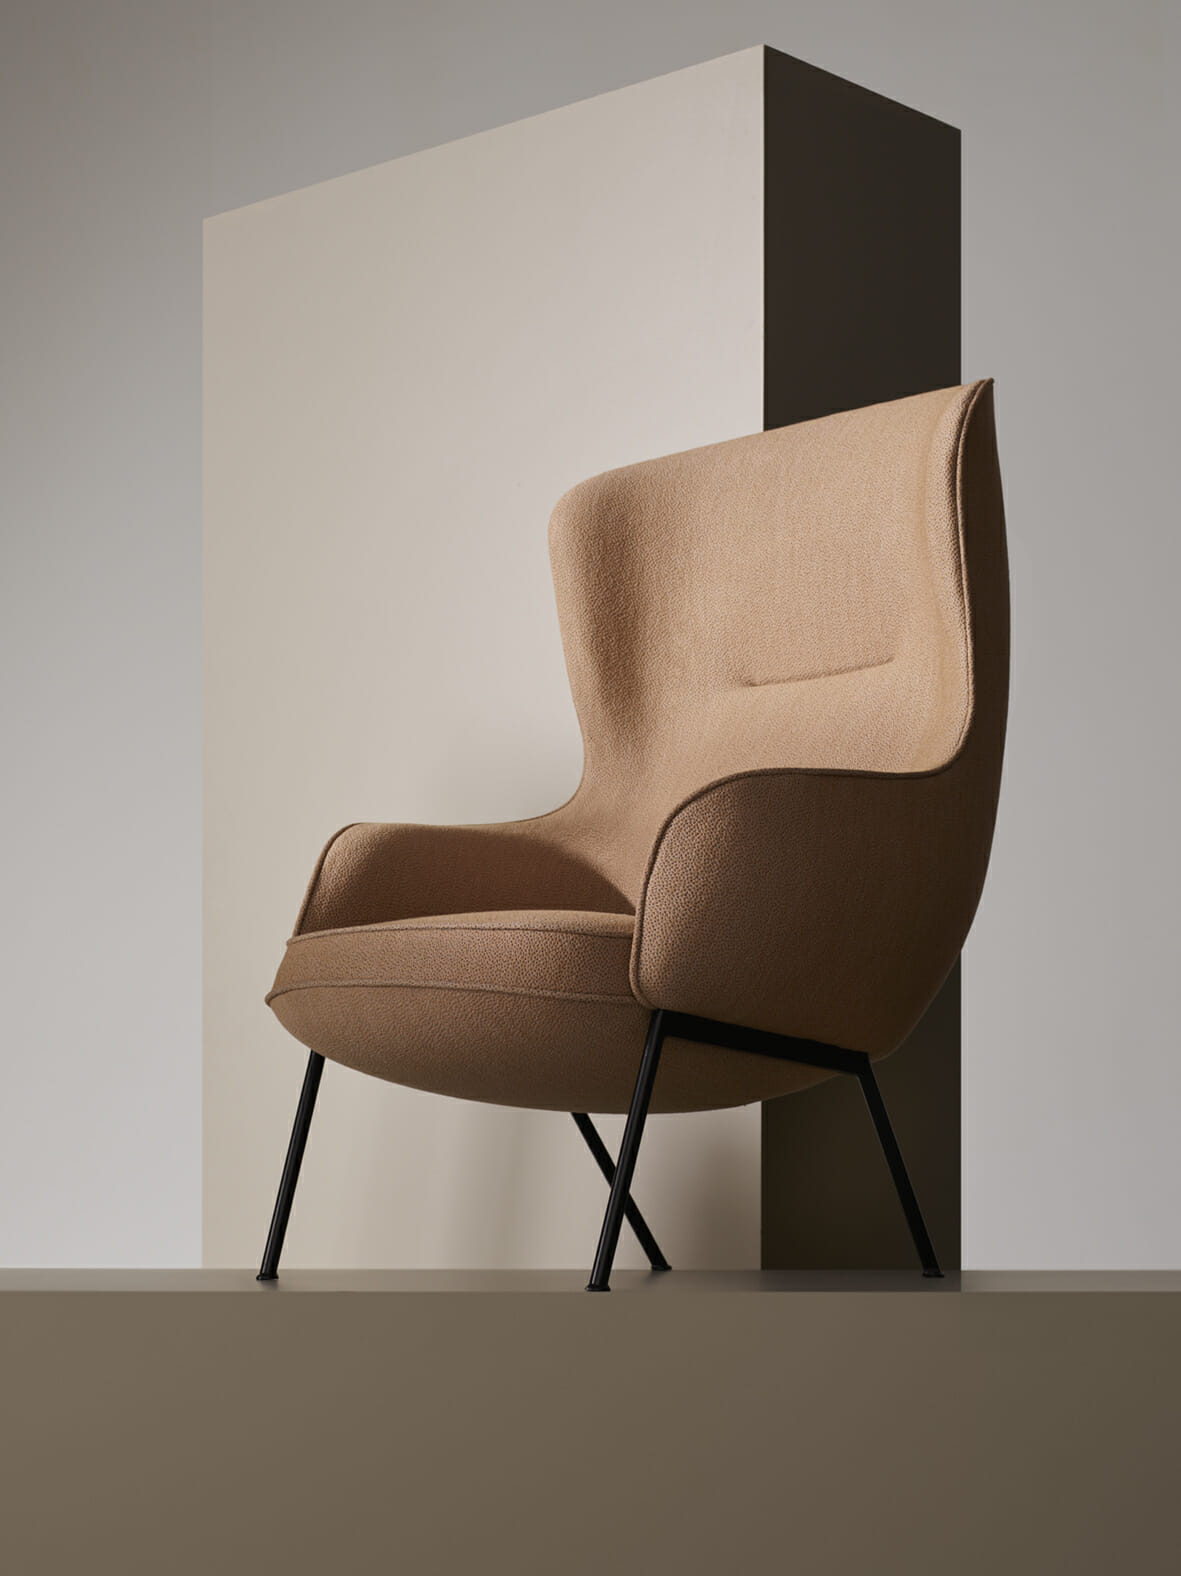 Luca Nichetto's 'Mame' armchair for Fogia.